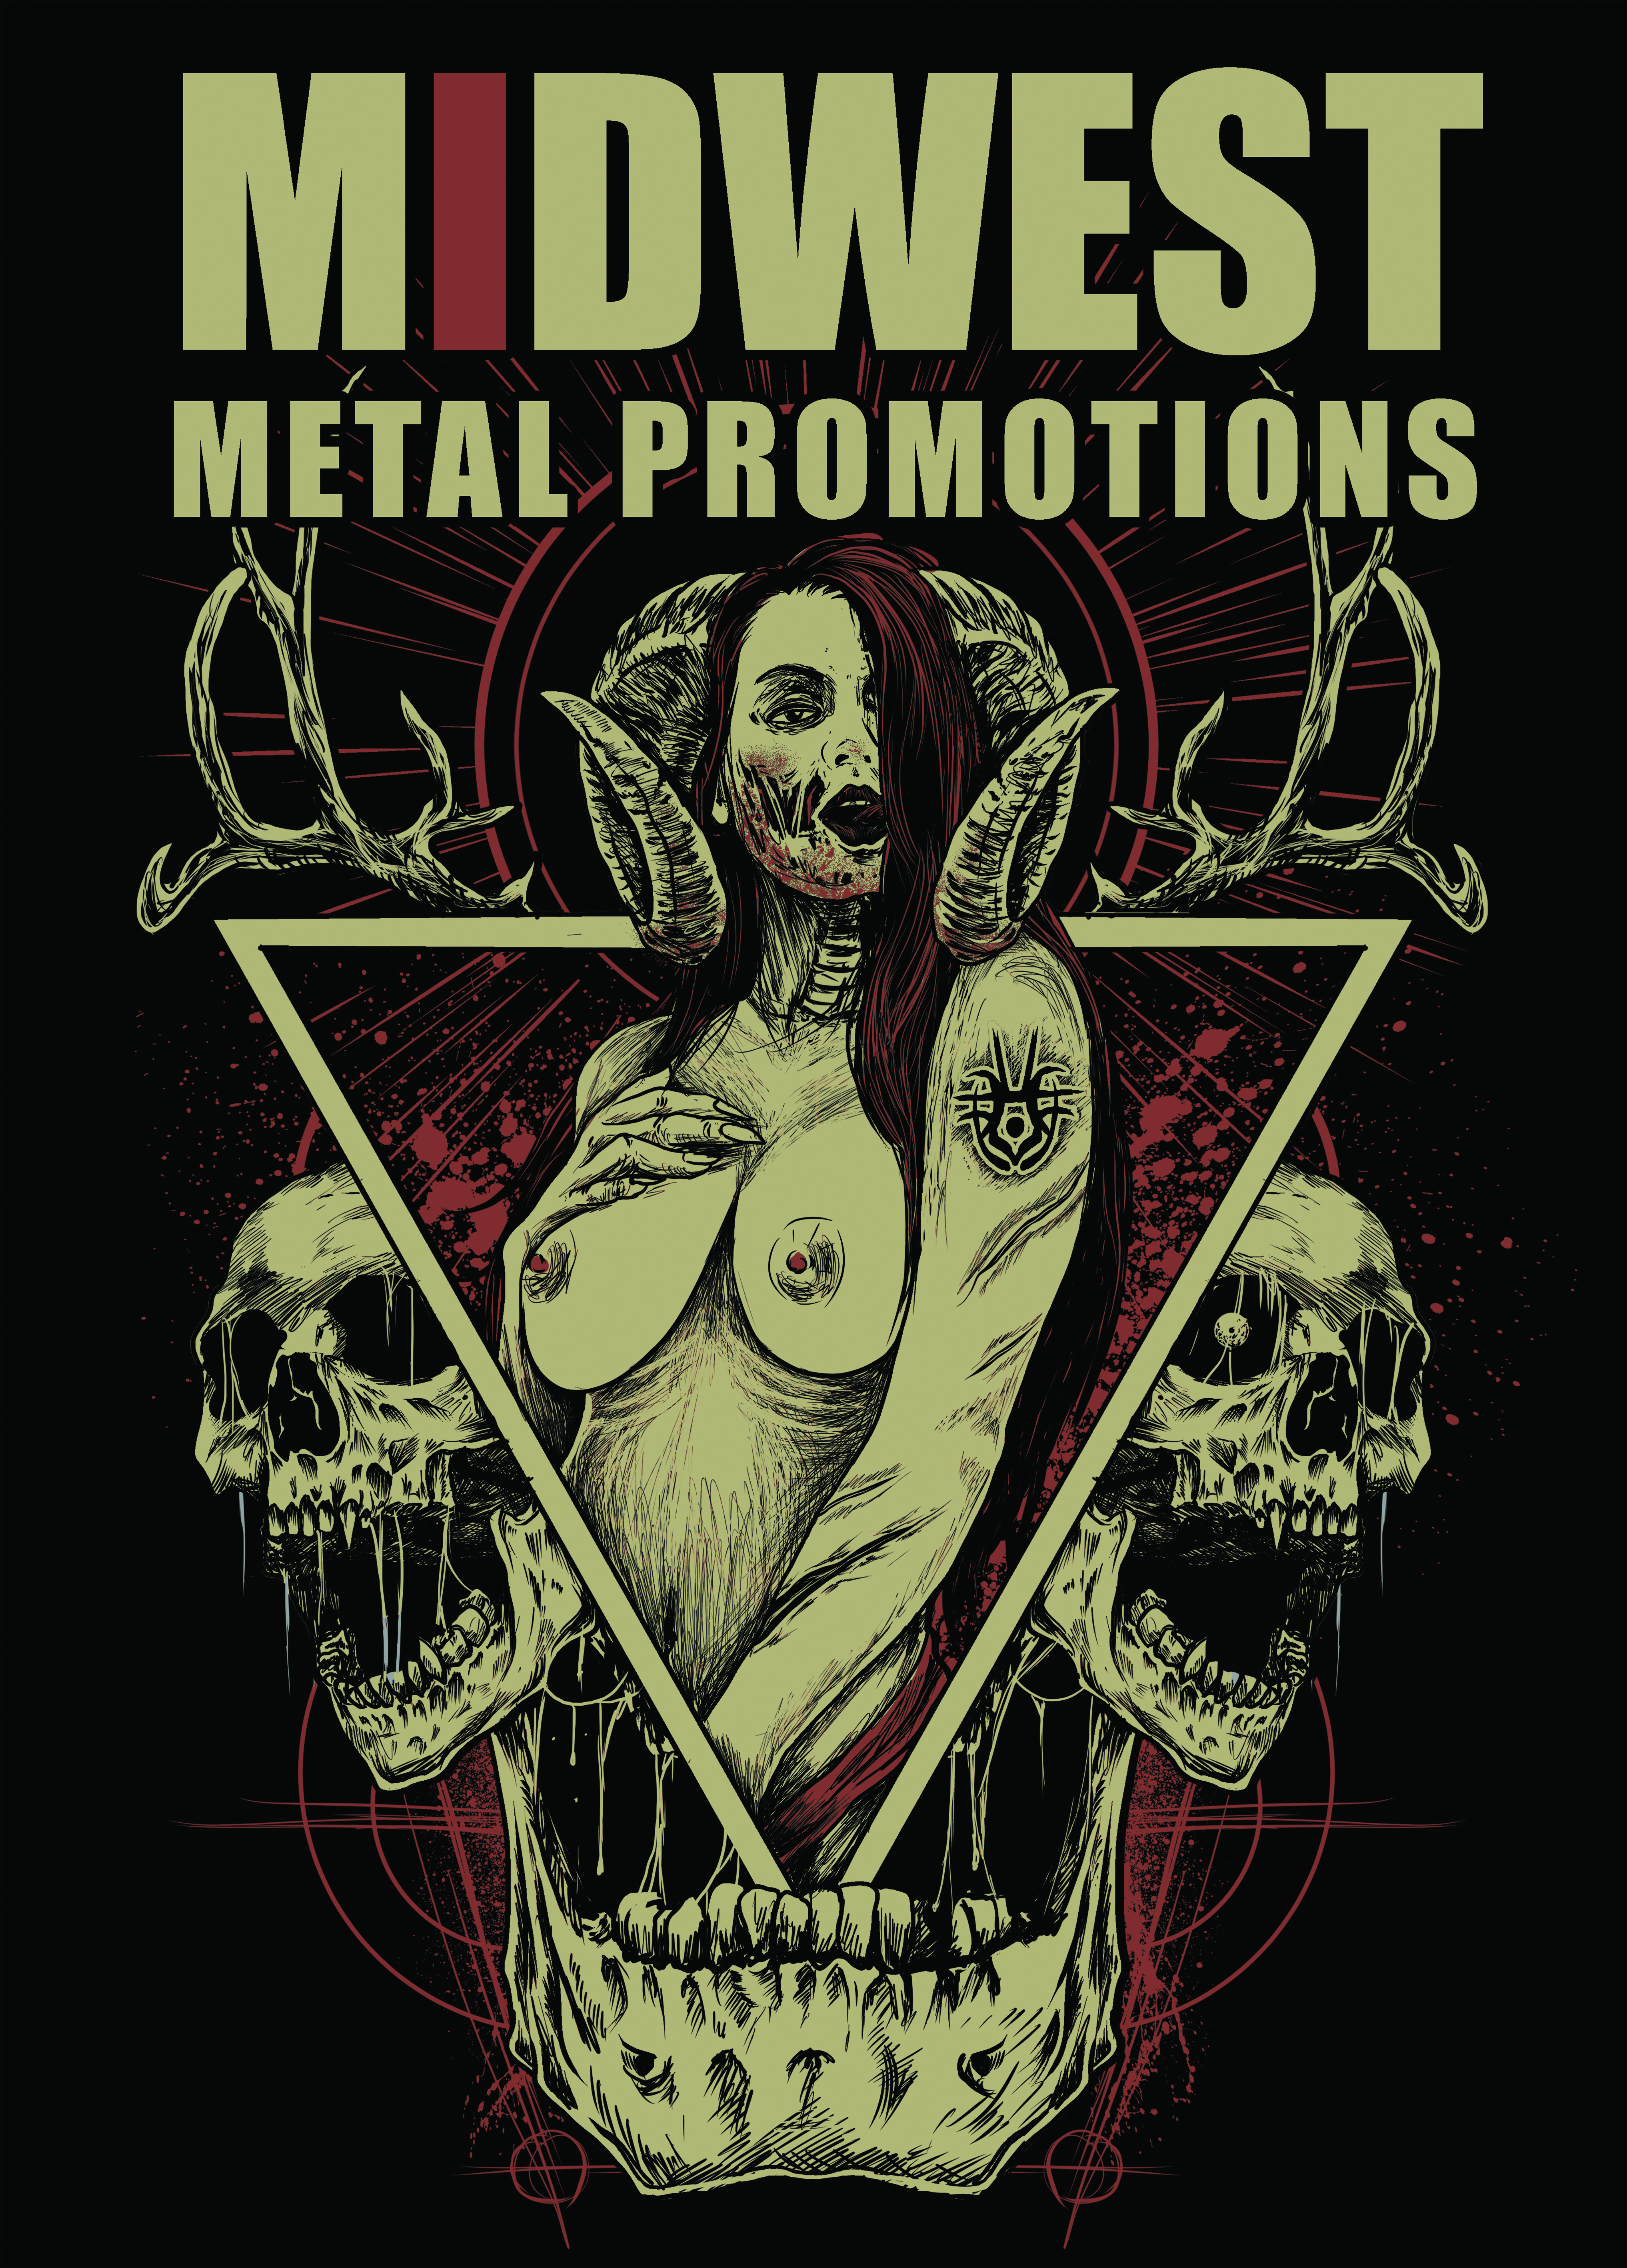 Midwest Metal Promotions